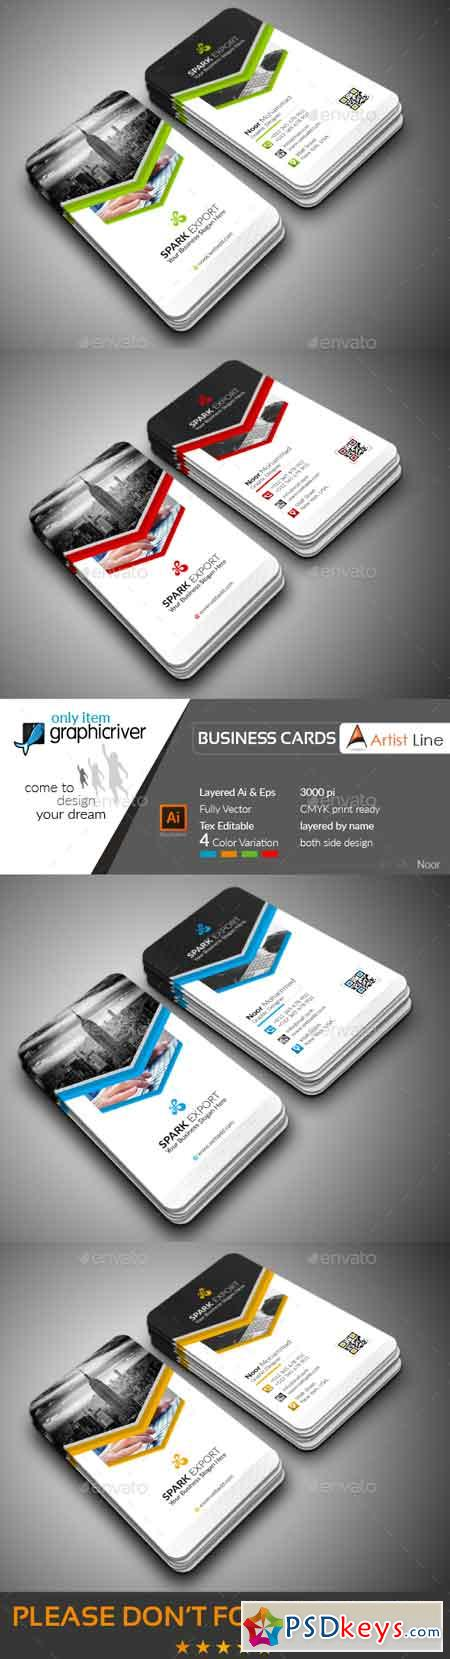 Photography Business Card 20648121